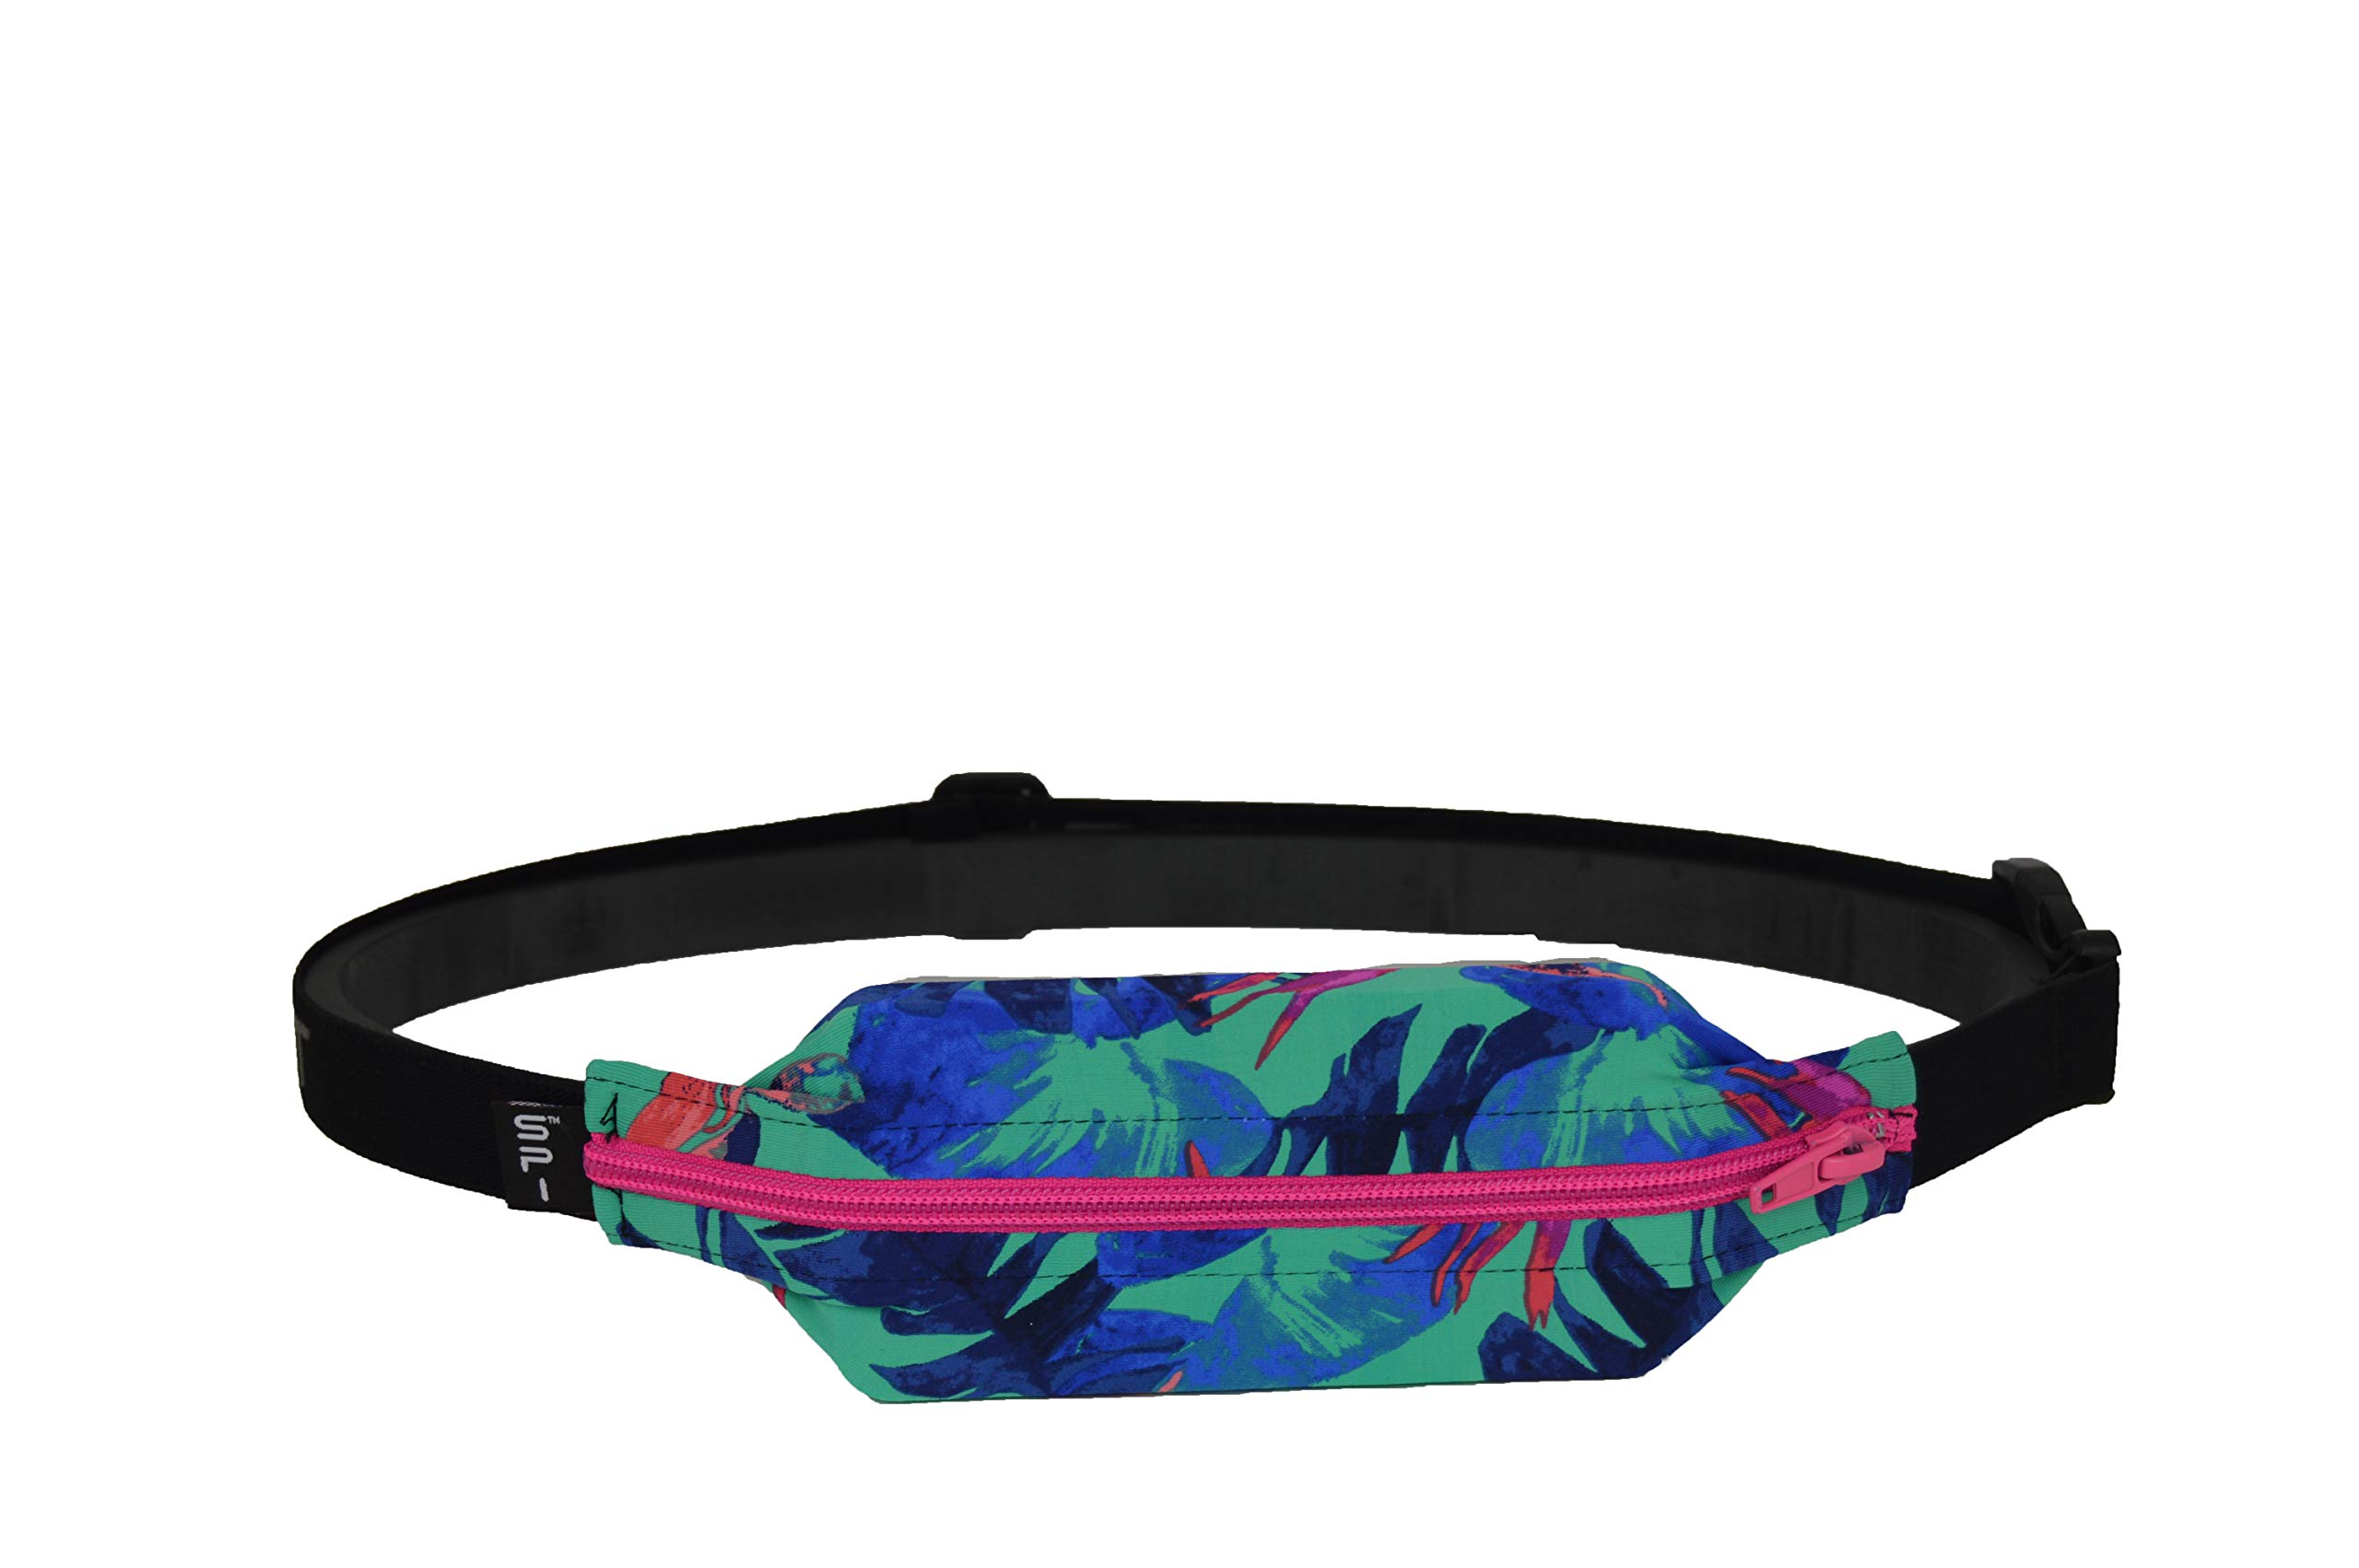 No-Bounce Waist Pack for Runners SPIbelt Running Belt Large Pocket Sport Pouch iPhone 6 7 8-Plus X Athletes